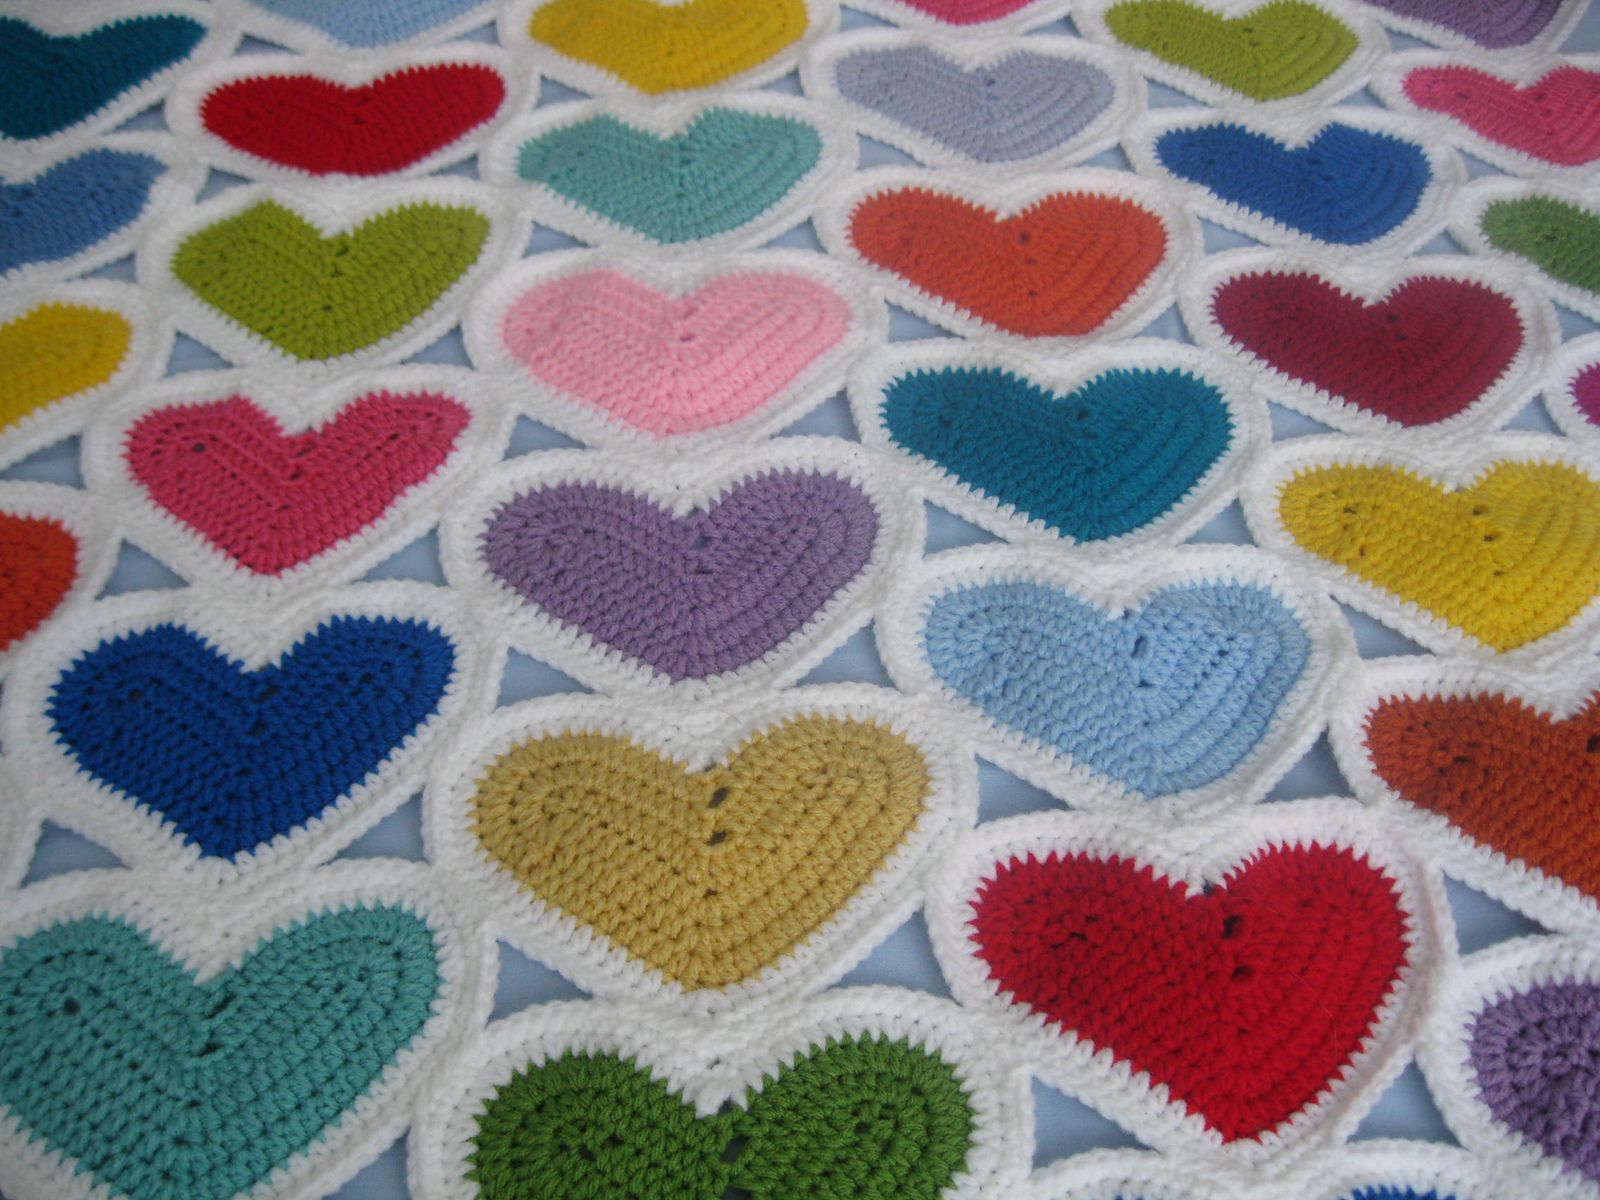 Little Heart Scrapghan pattern by Julie Lapalme | Pinterest